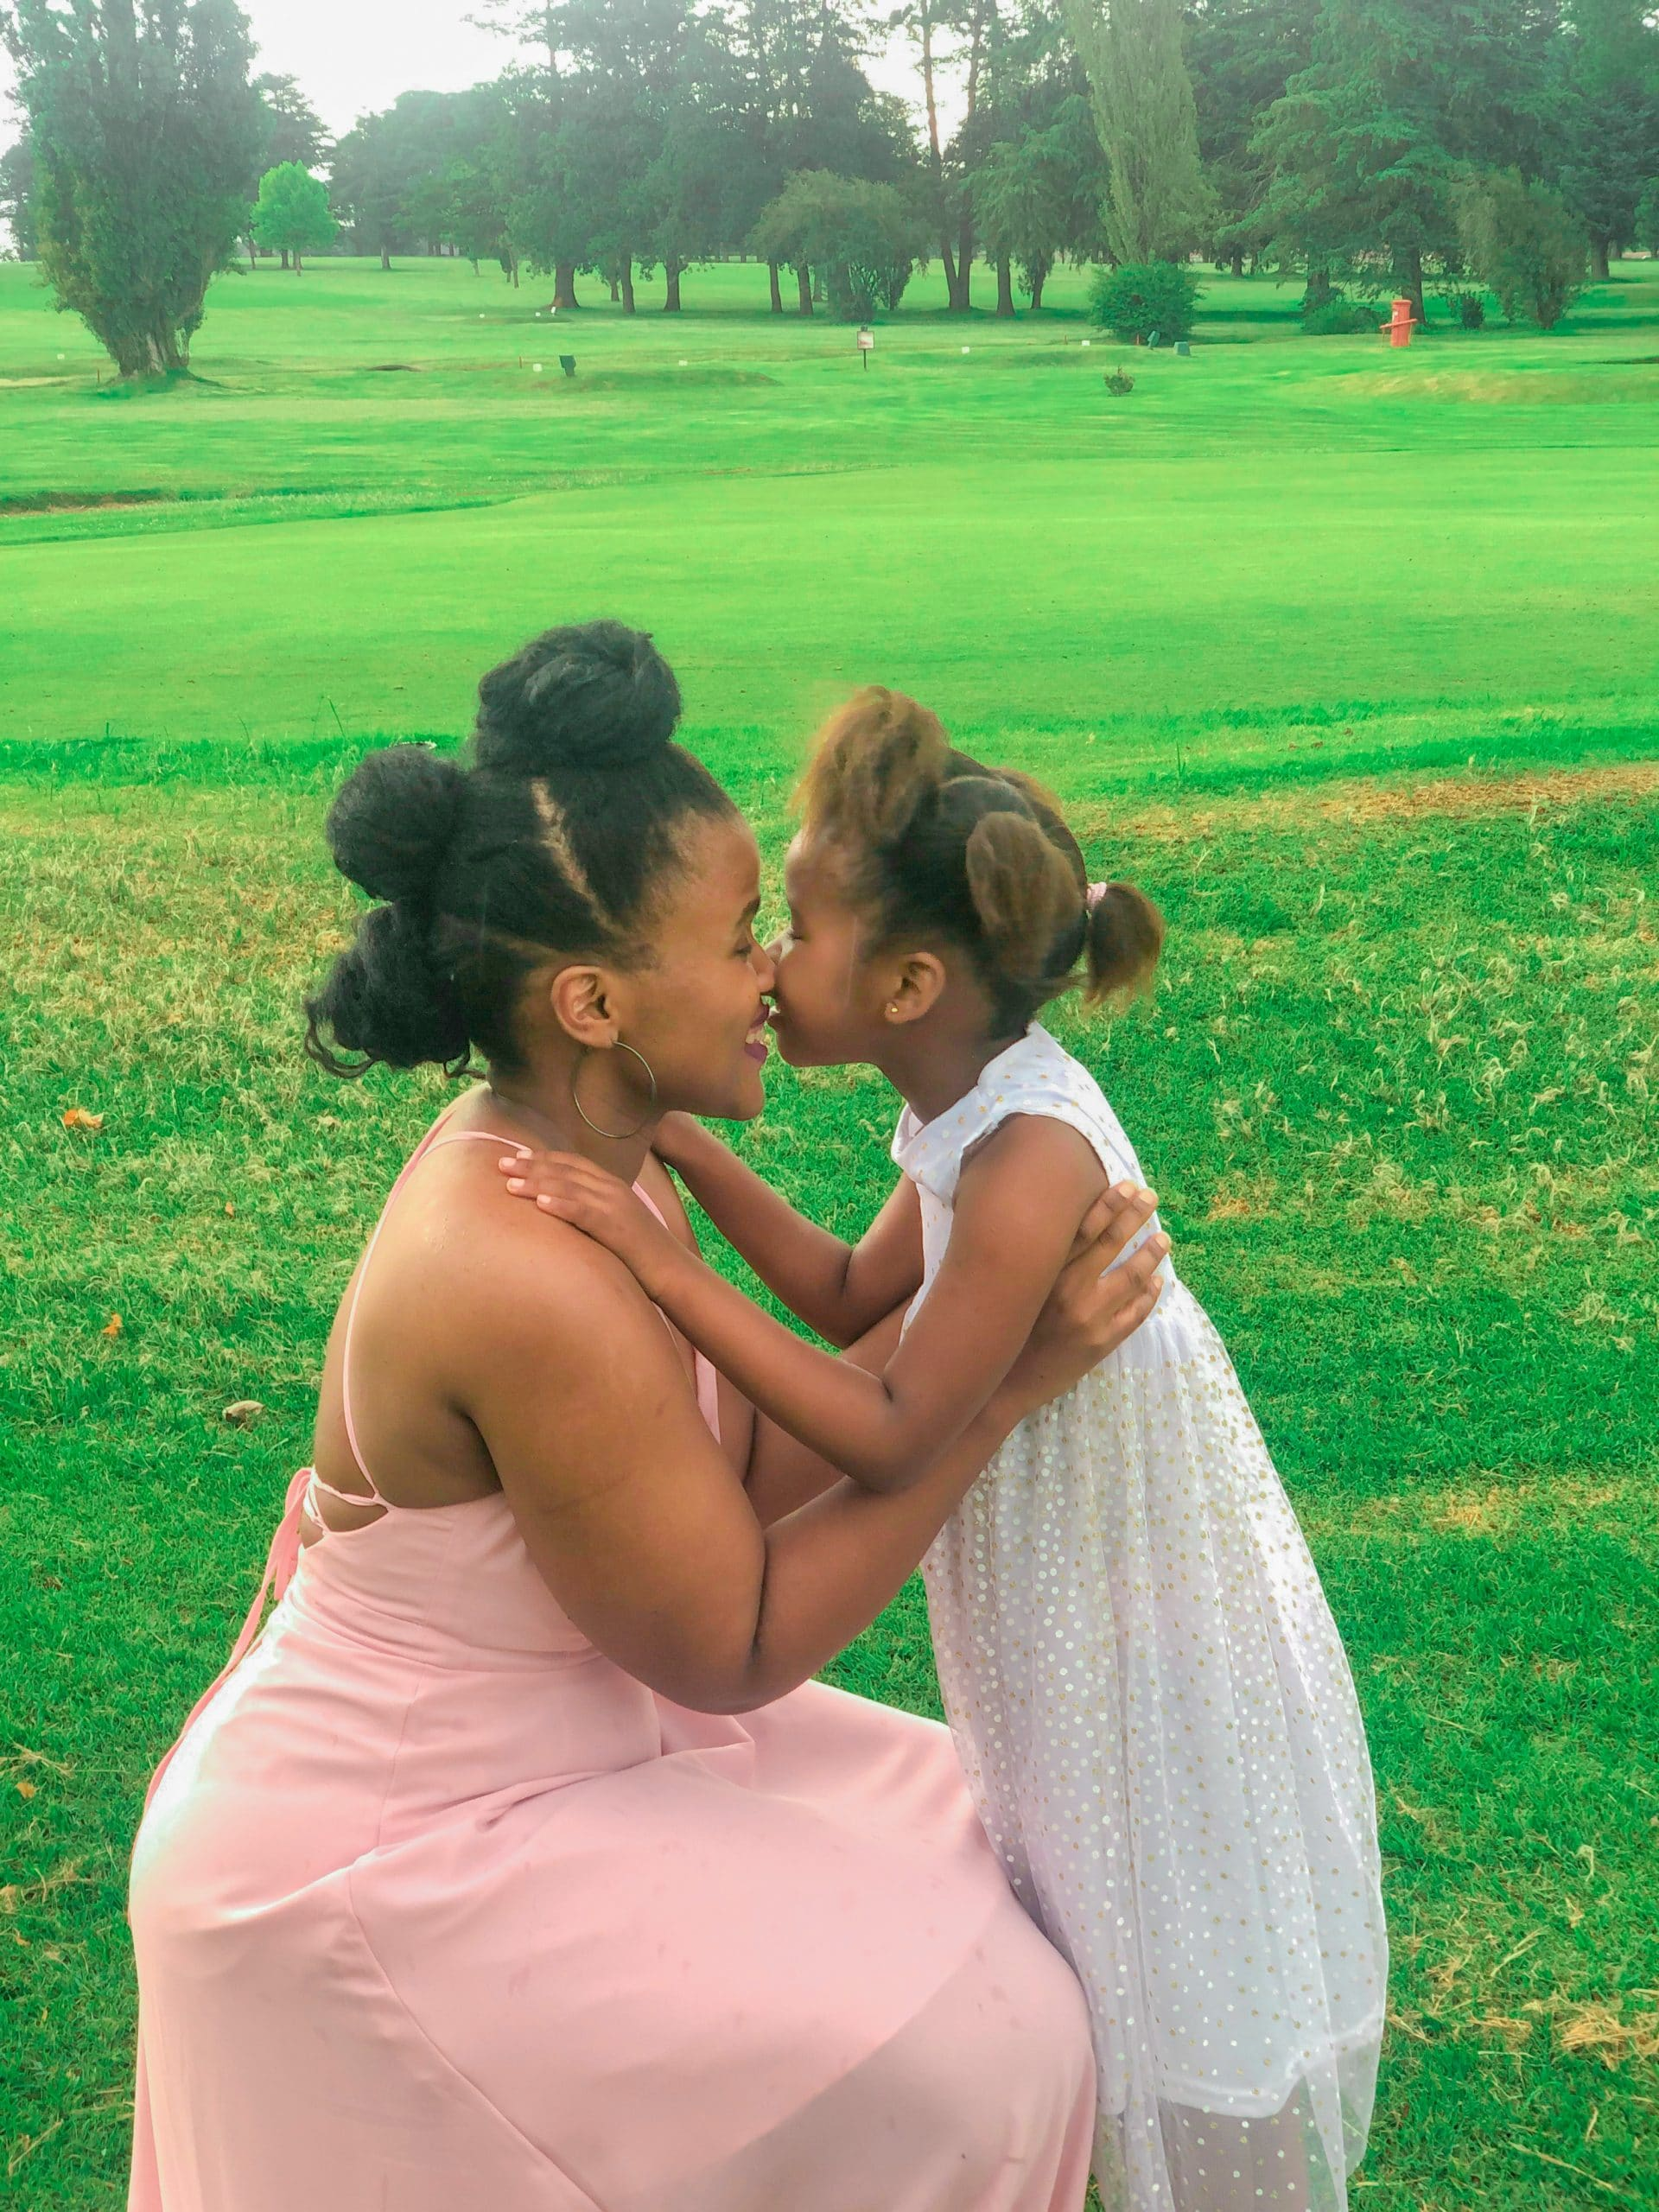 Healing the mother wound, 5 tips to get you started with self-care as a mom